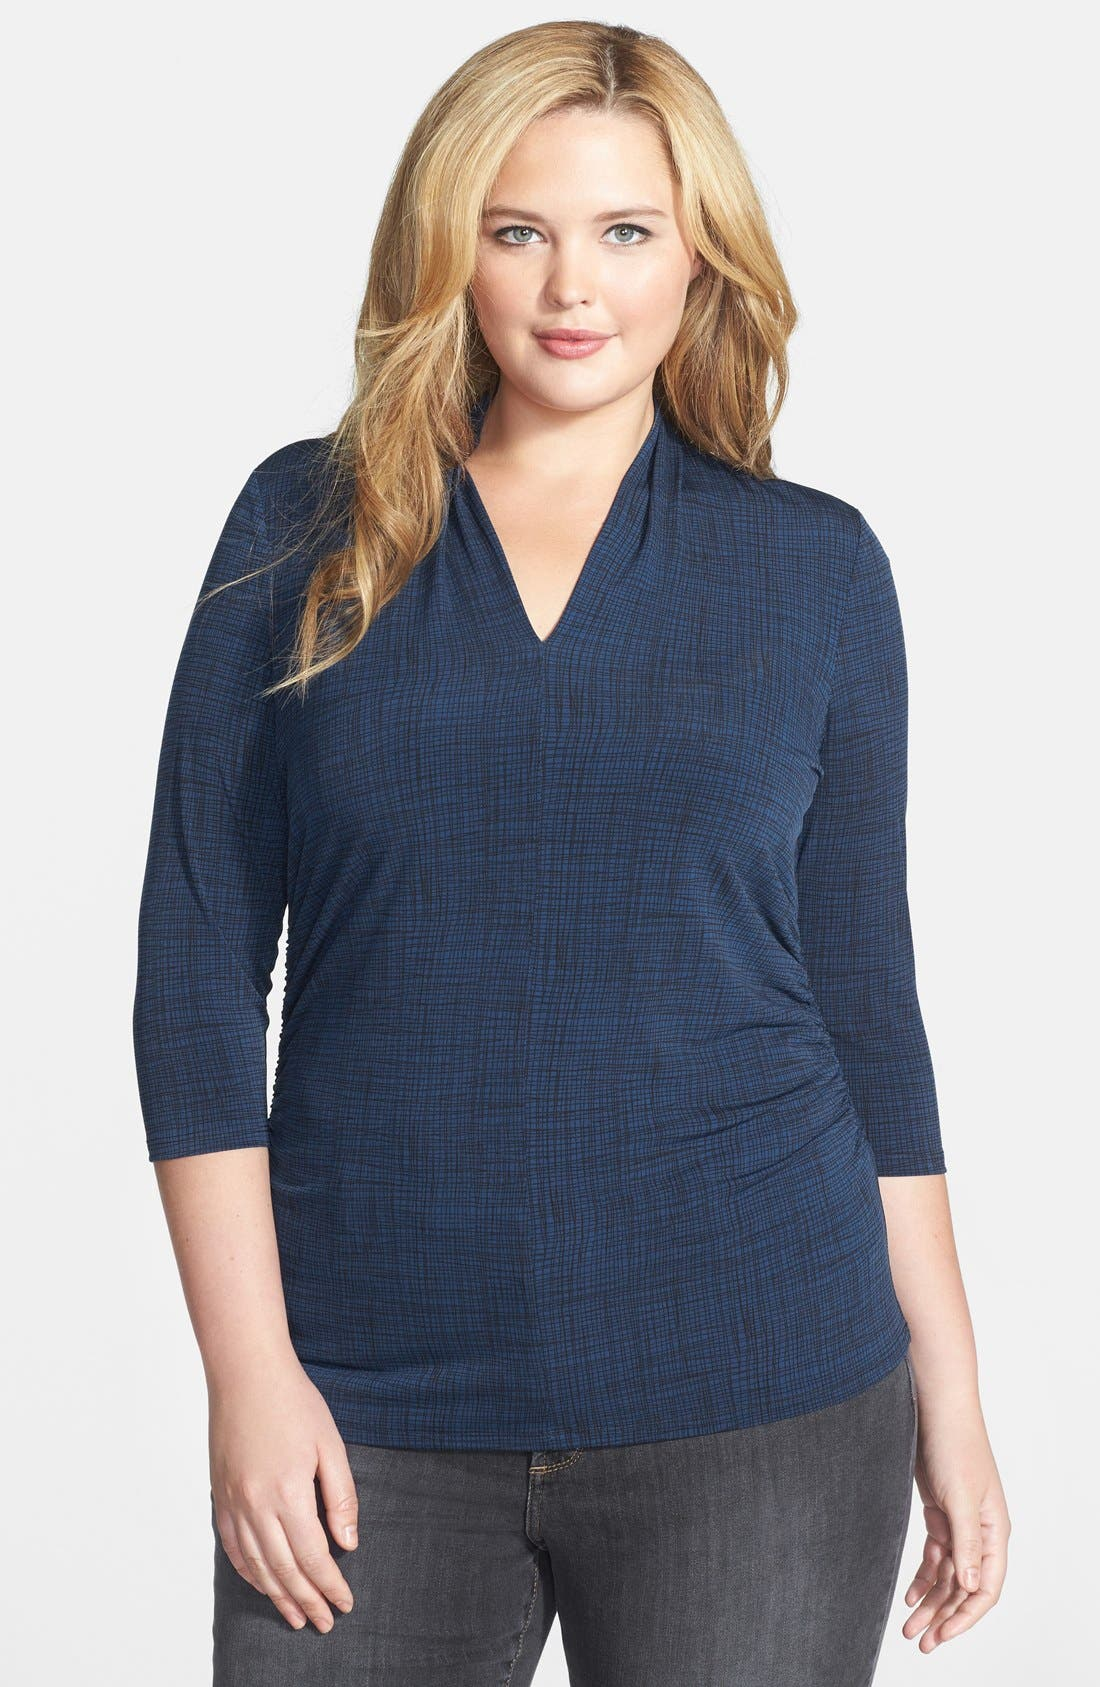 Alternate Image 1 Selected - Vince Camuto Crosshatch Print V-Neck Top (Plus Size)